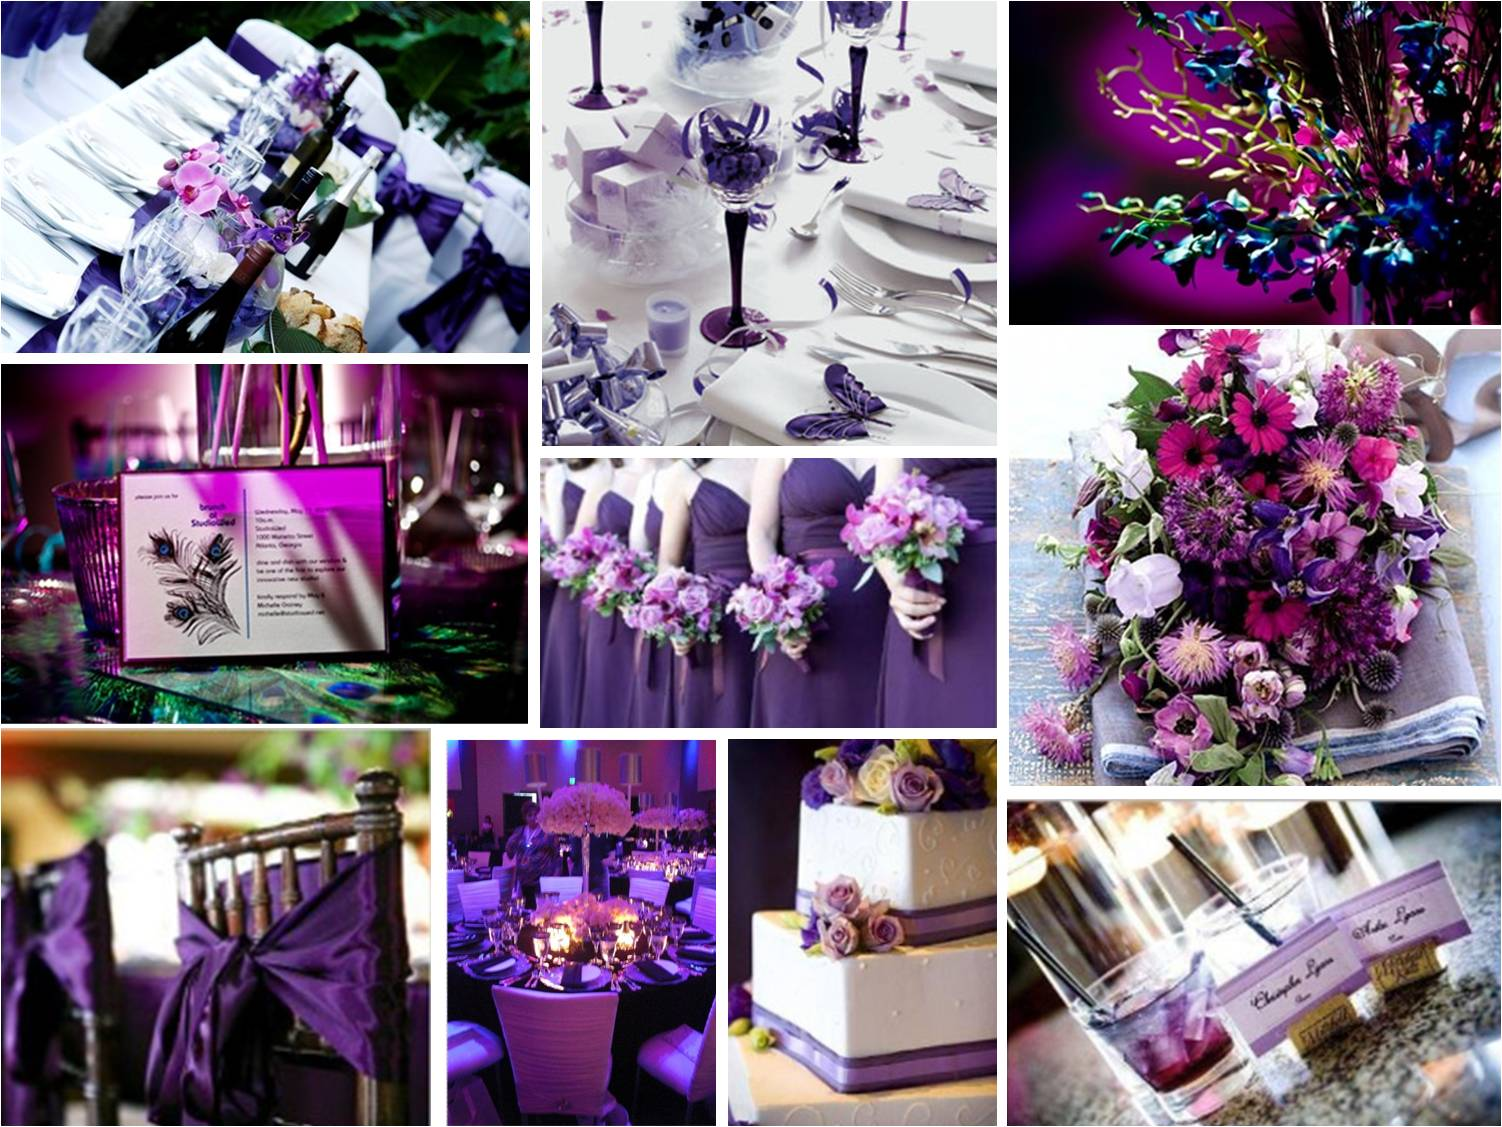 Purple wedding decorations ideas pictures | Wedding-Decorations